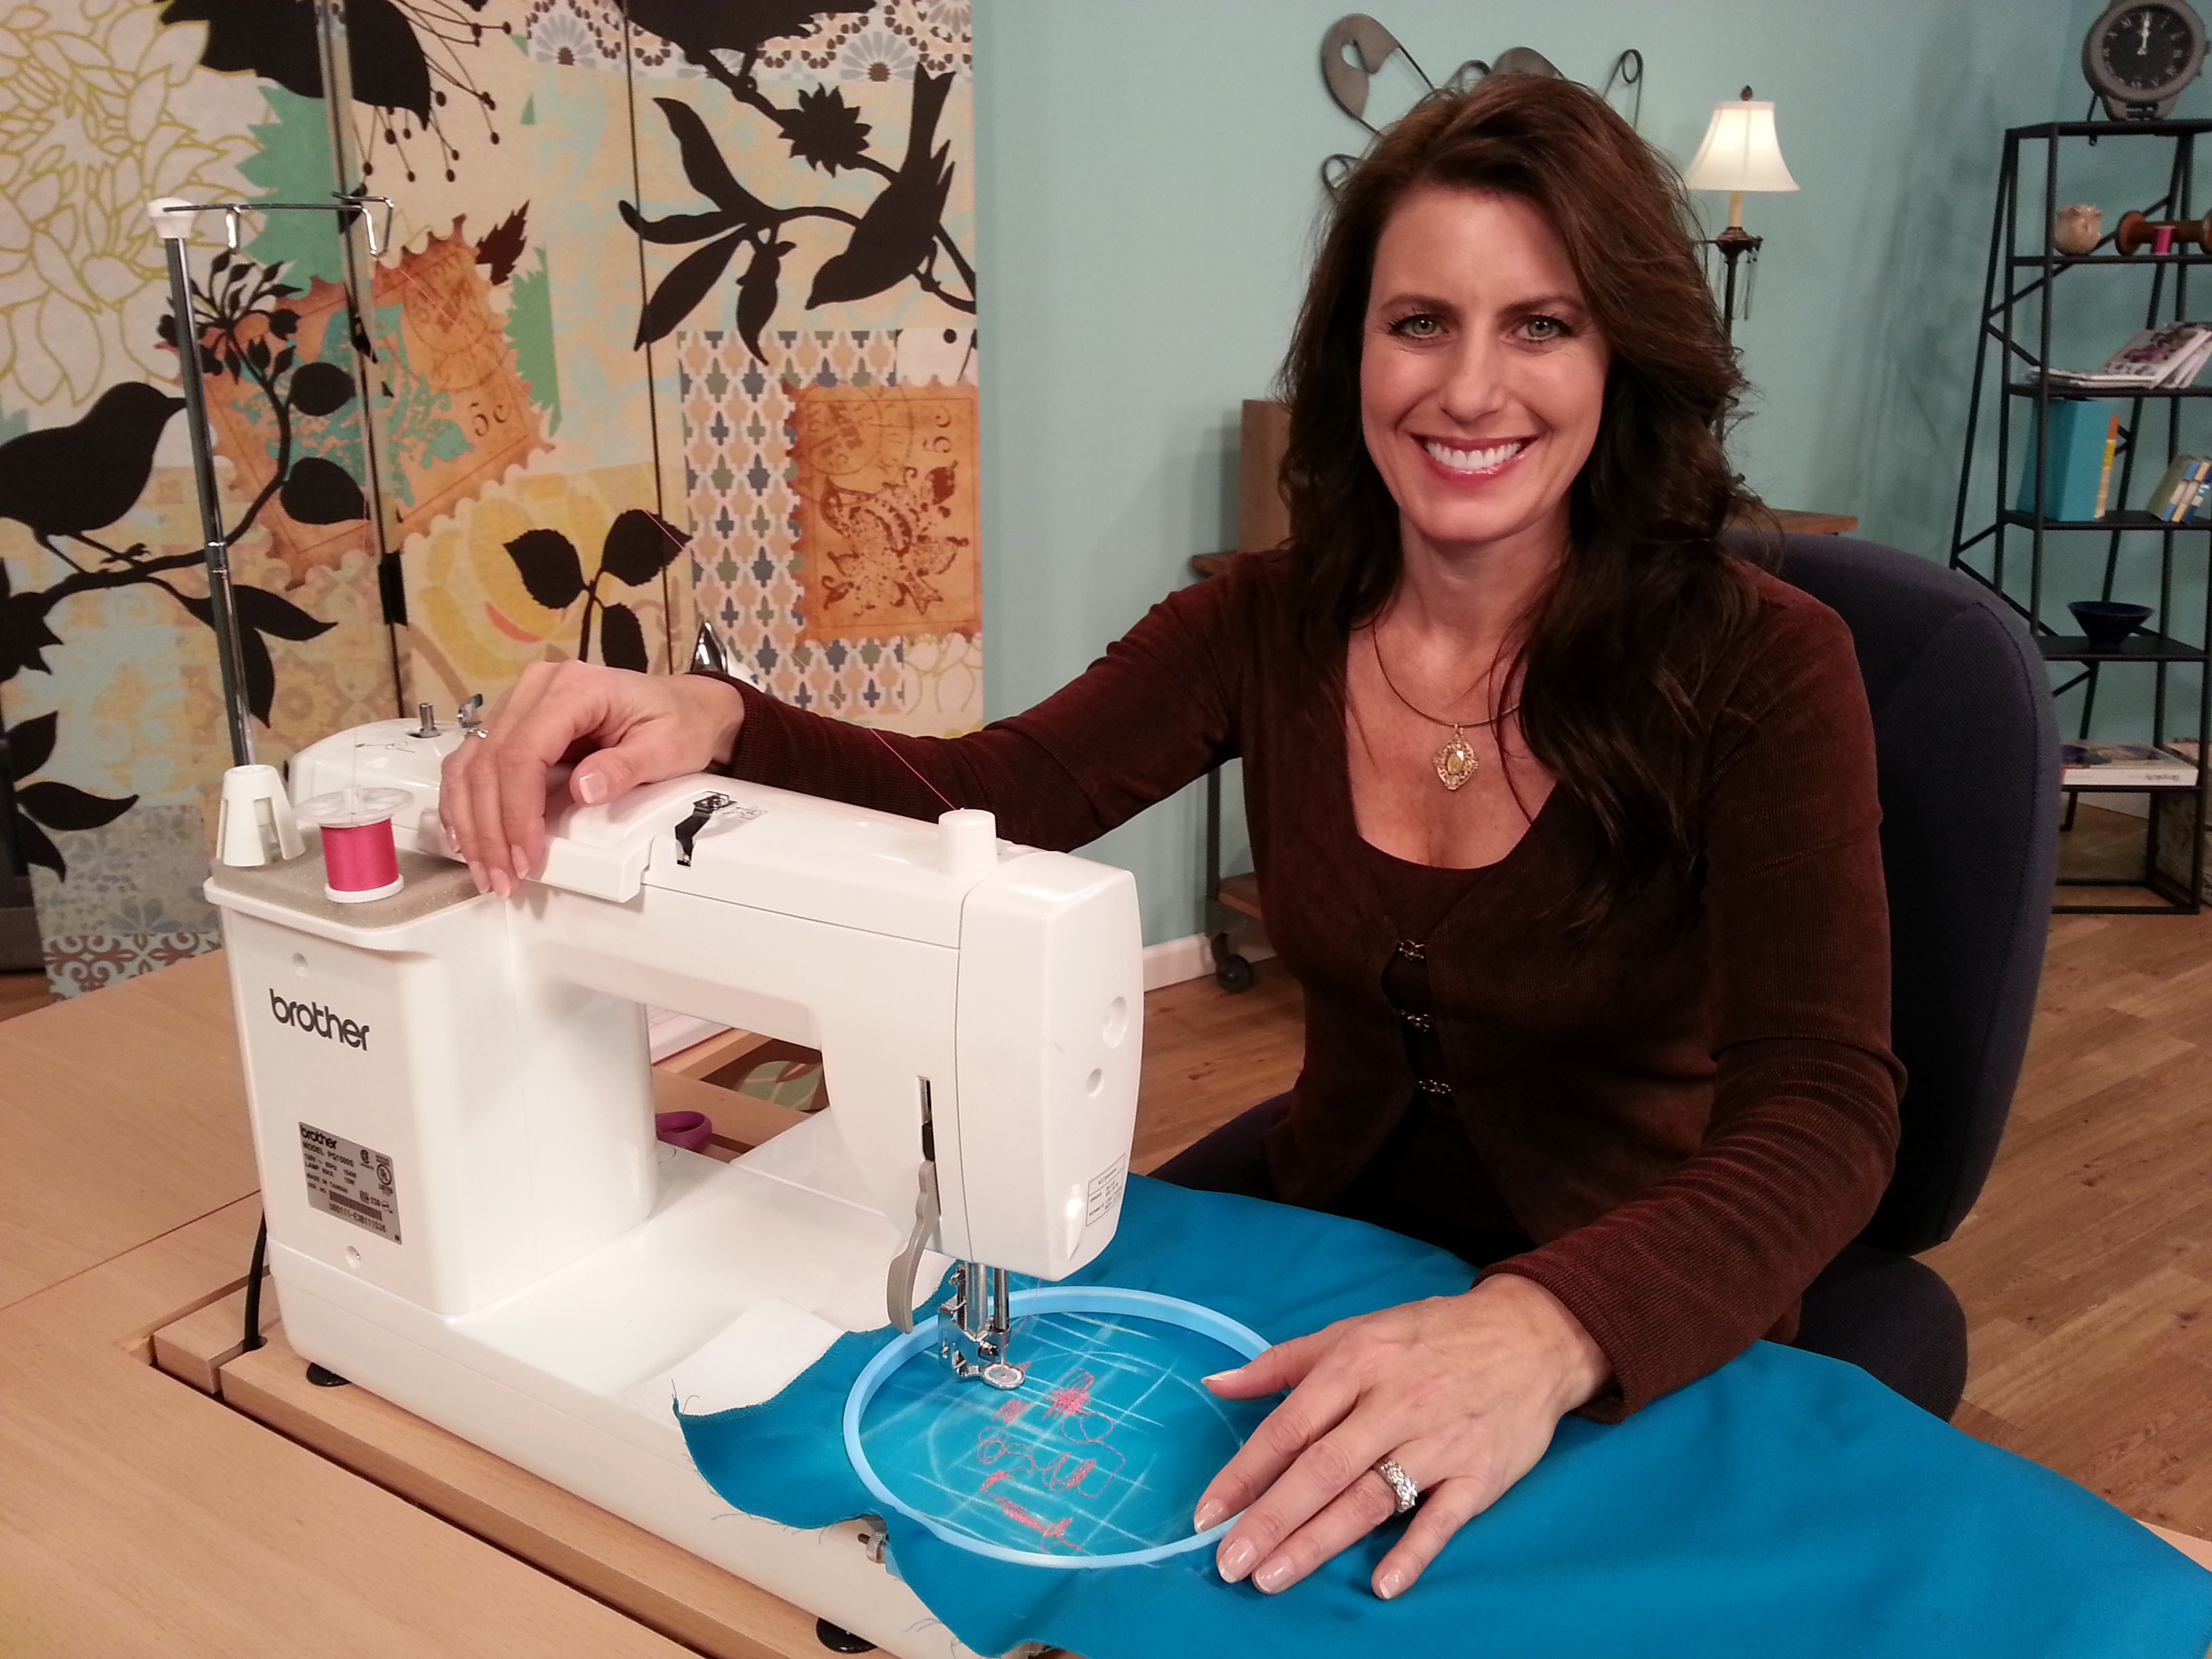 Pin By Connie Curtis On Sewing 2 Easy Sewing Brother Dream Machine Sewing